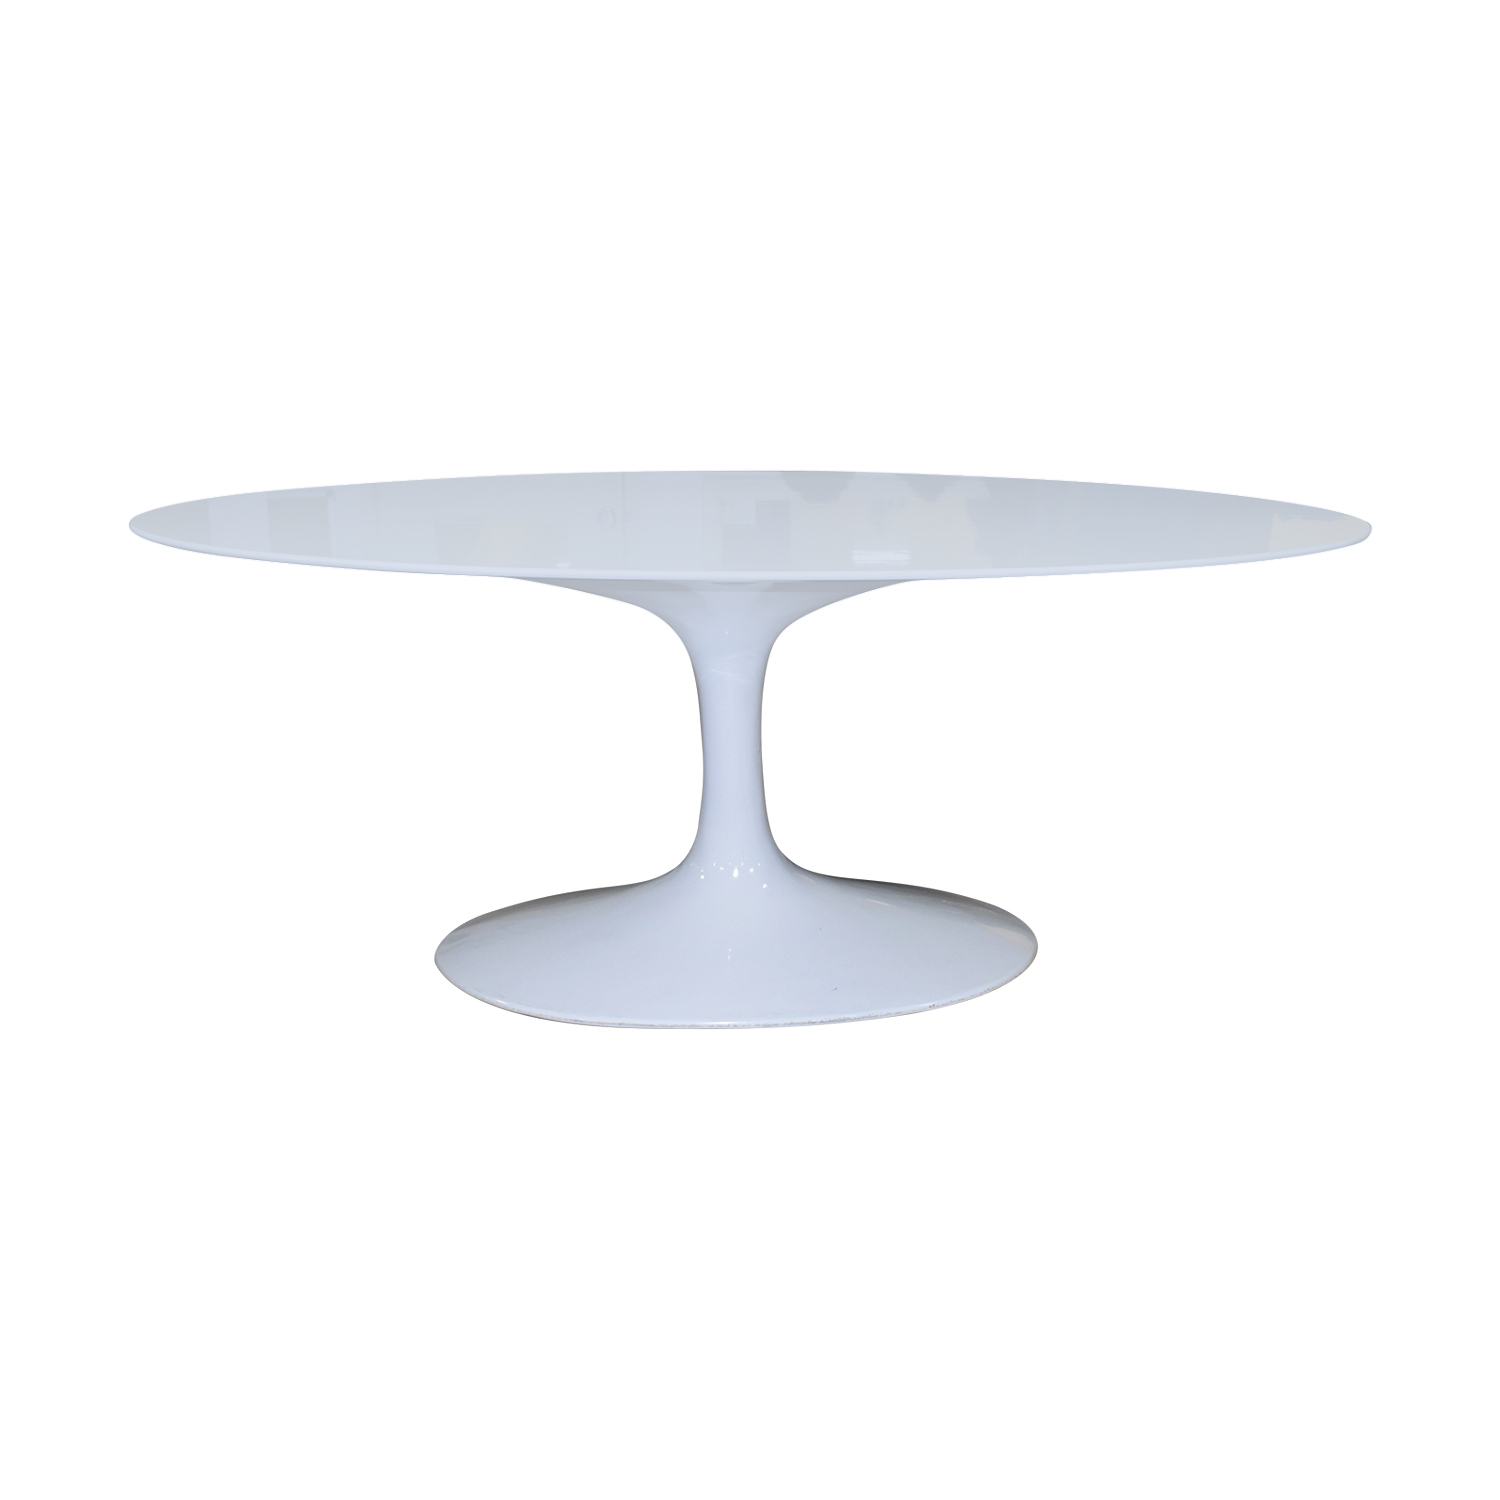 shop Replica of White Knoll Saarinen Oval Table online